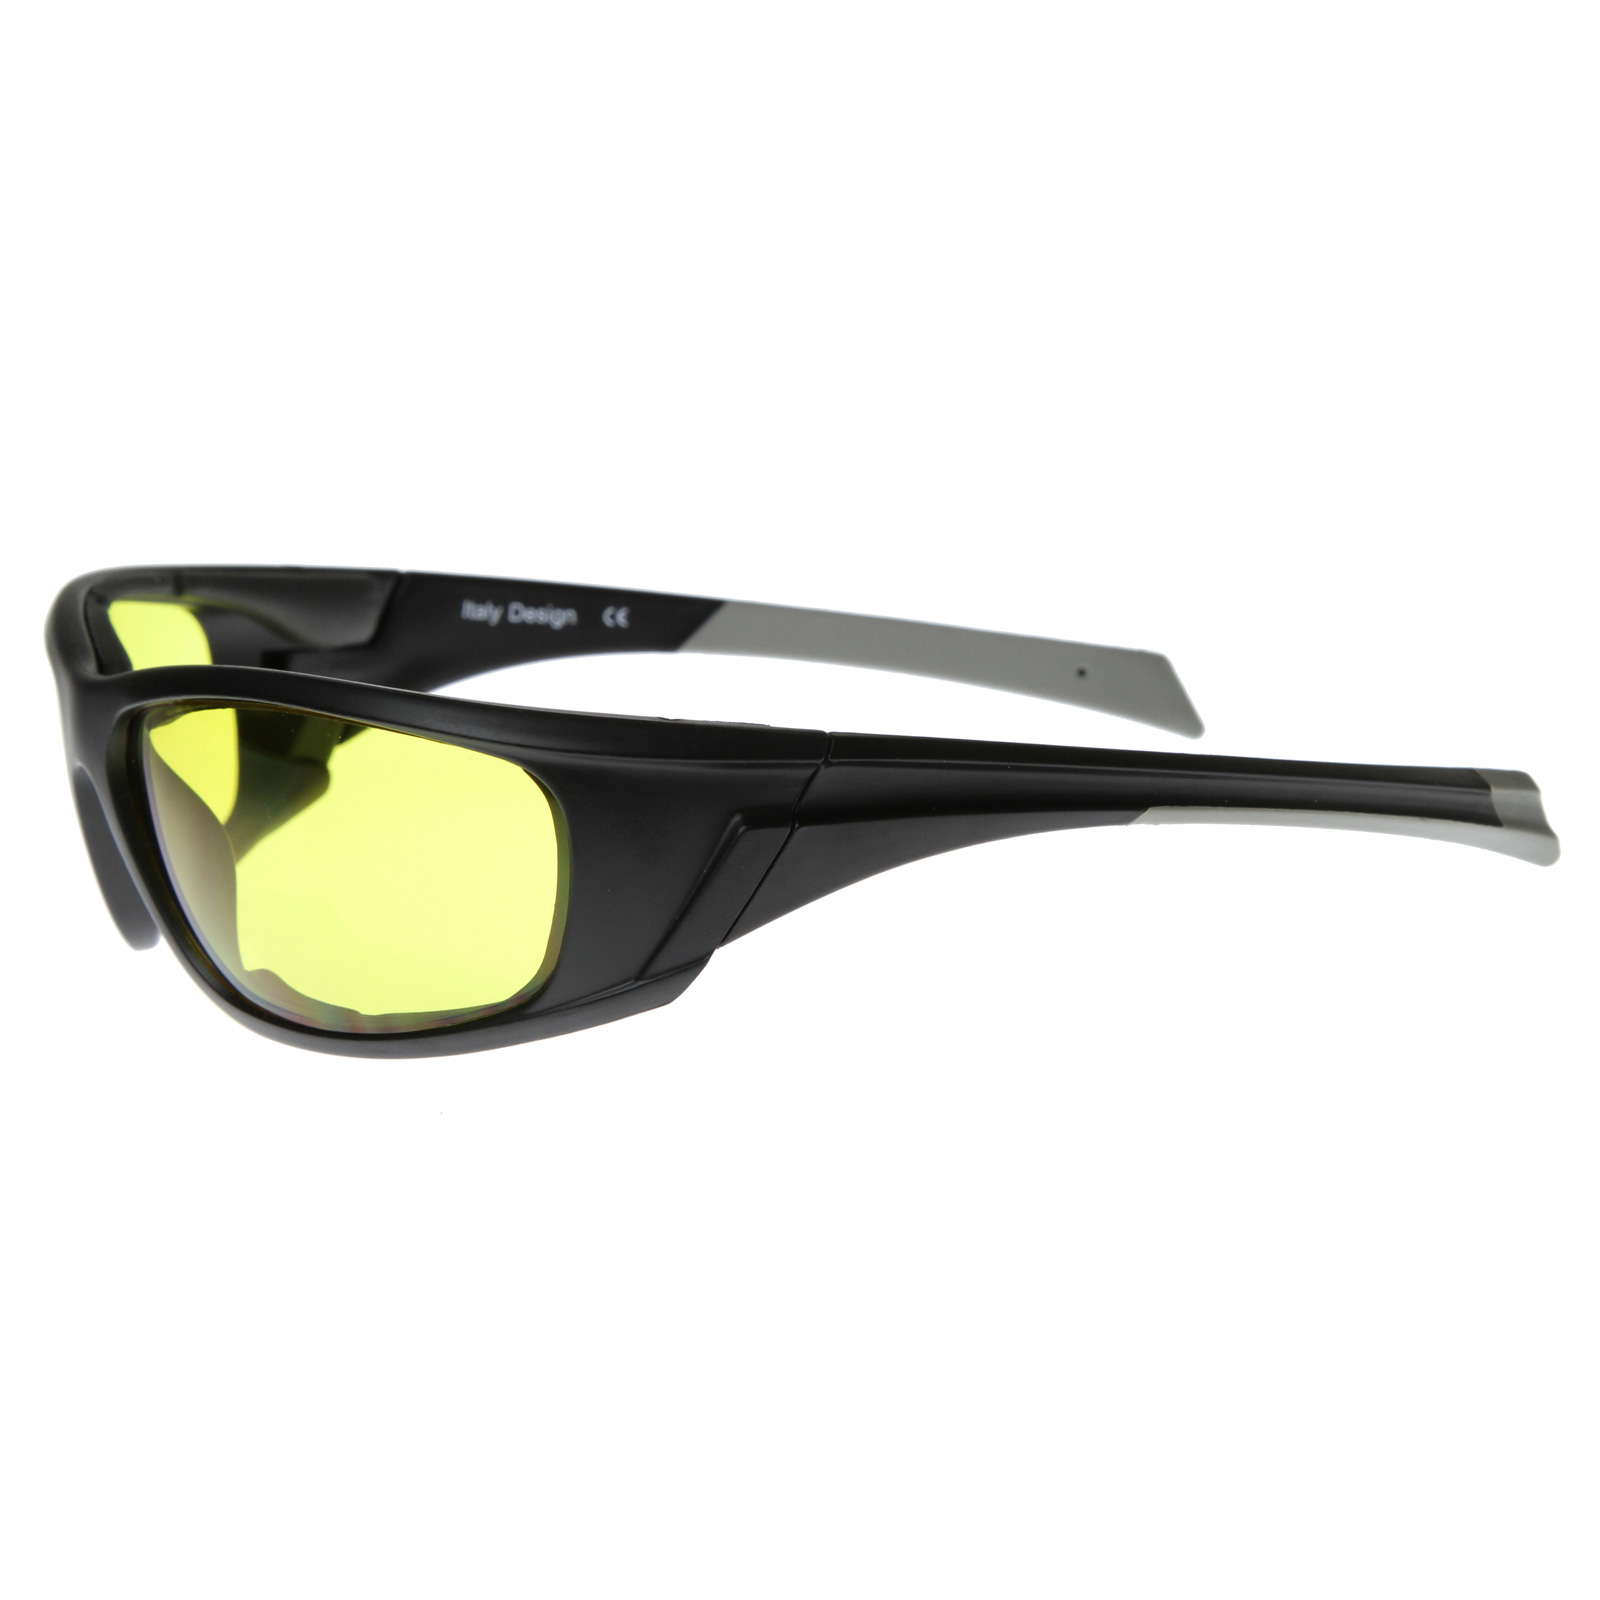 new safety sports focus lens technology protective eyewear